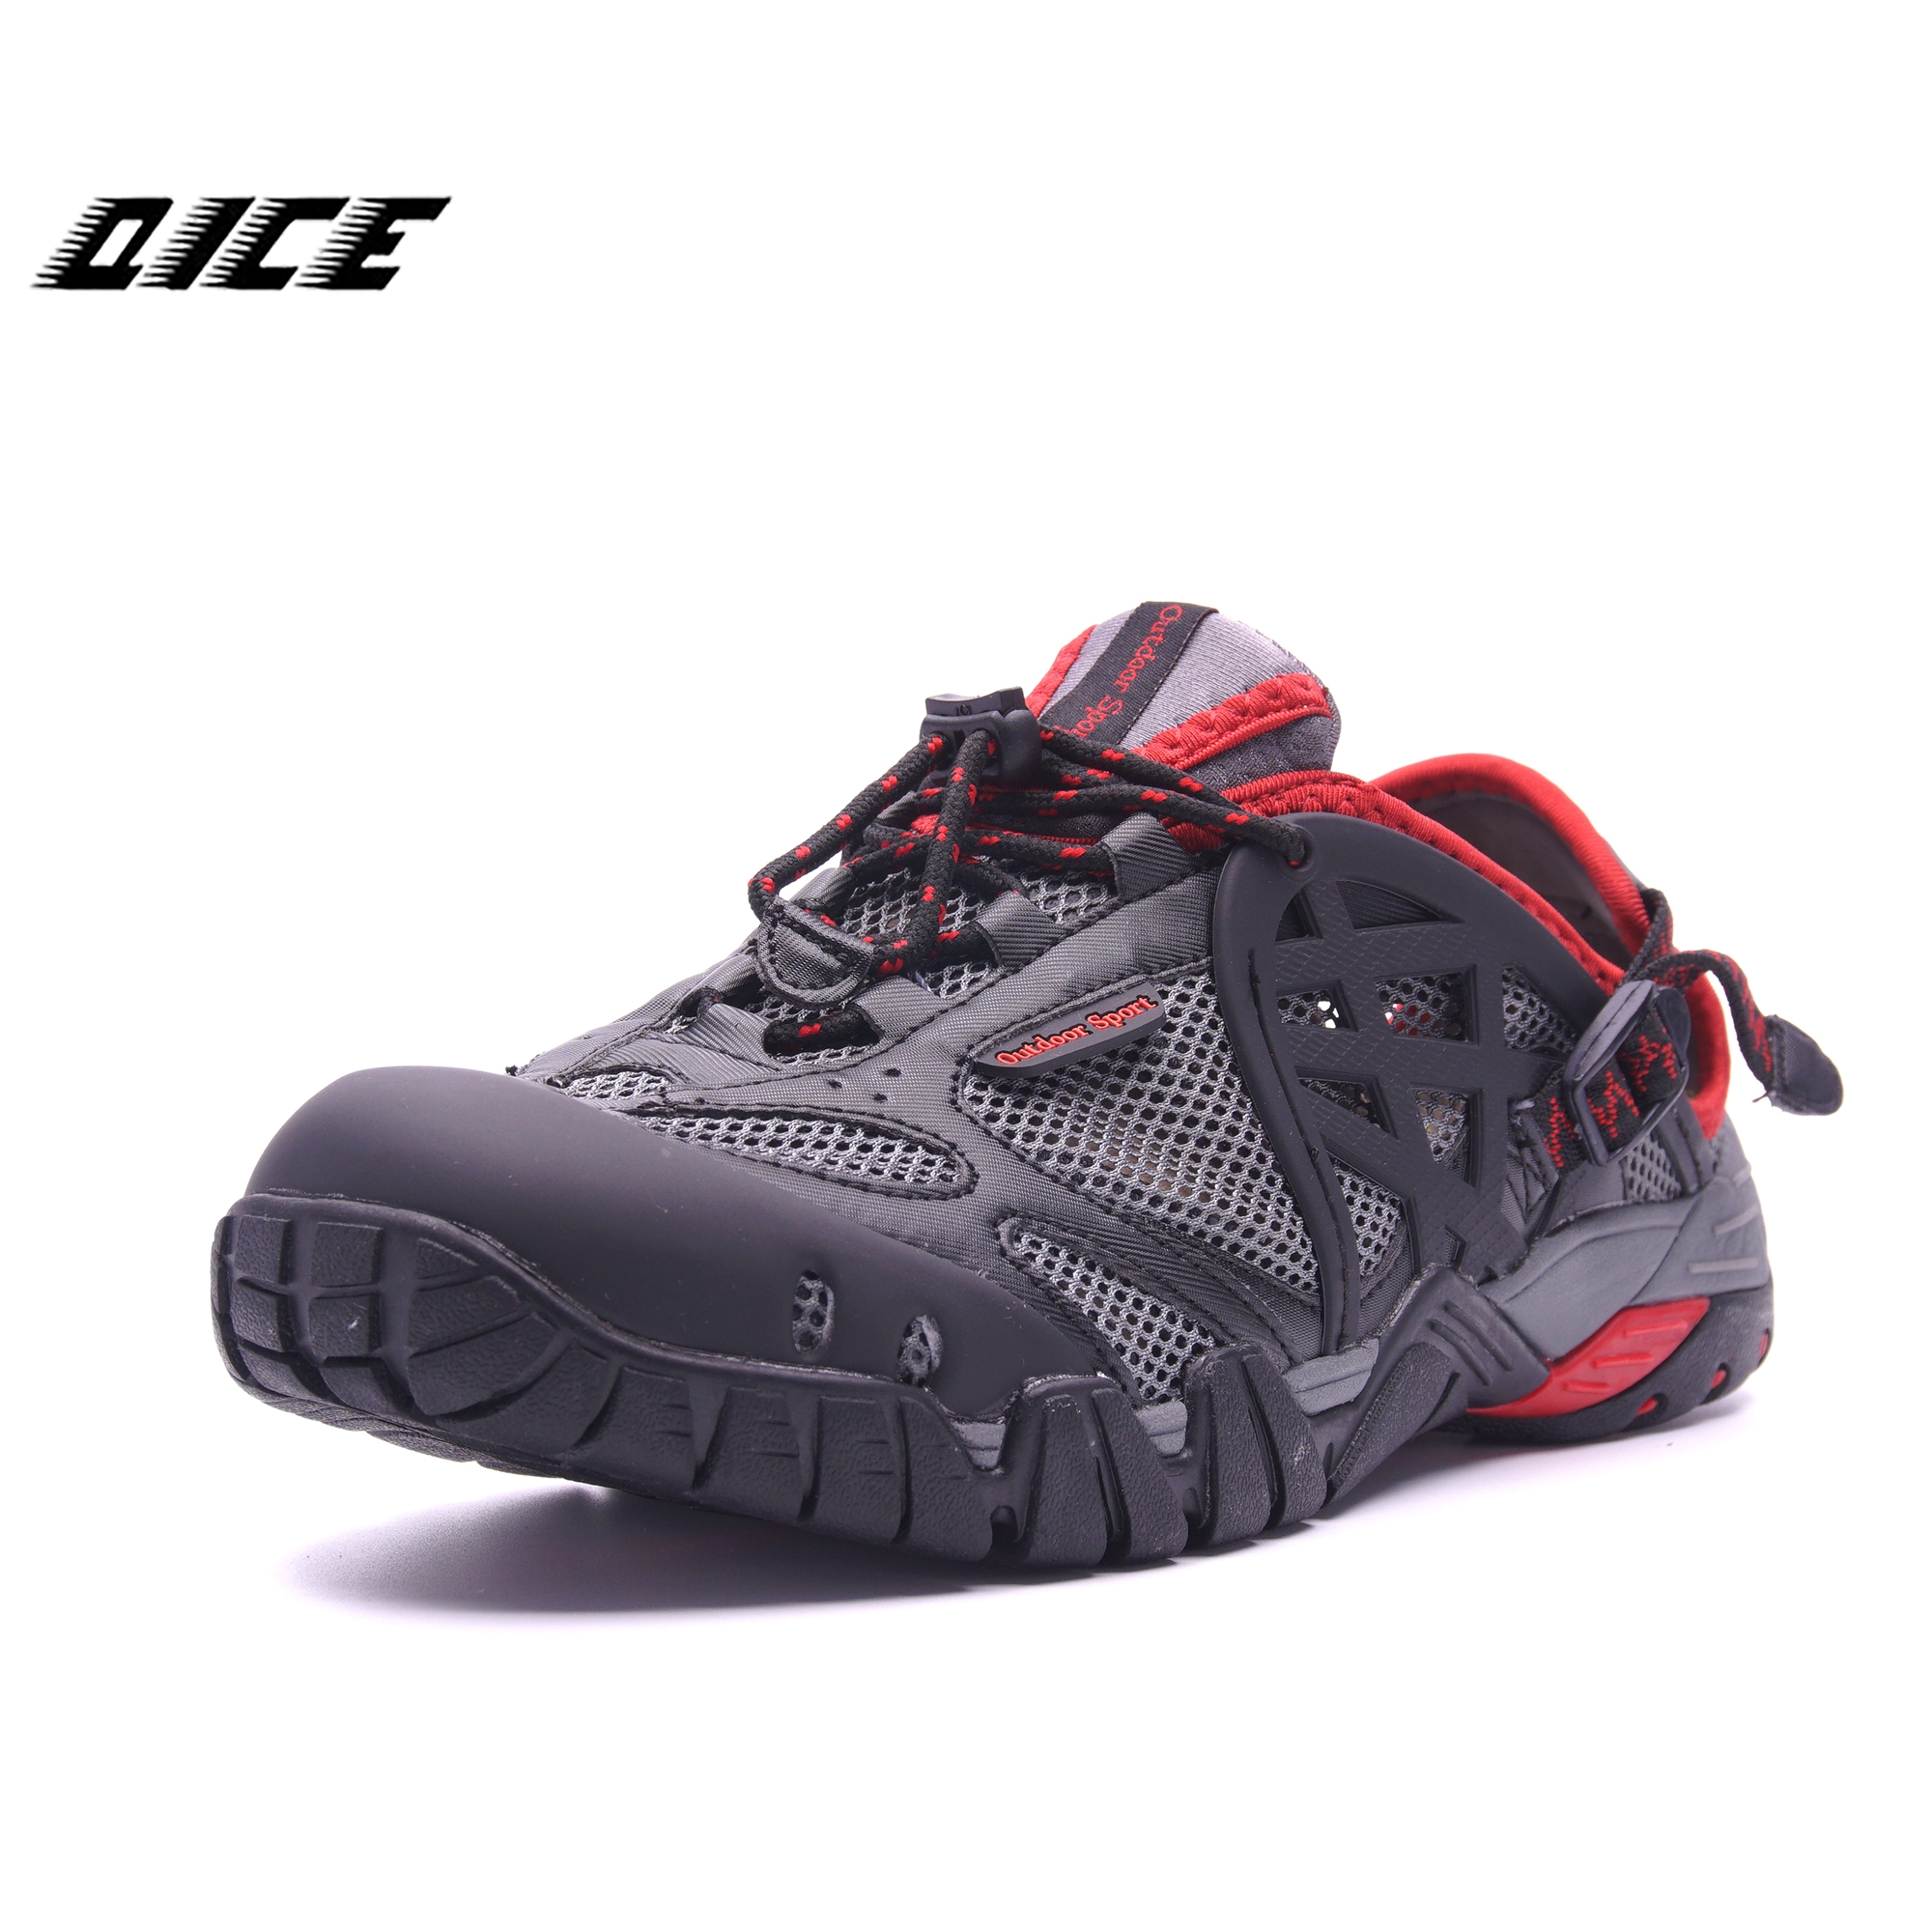 2017 Men Hiking Shoes Outdoor Sneakers Breathable Sport Shoes Men Big Size Hiking Sandals For Men Trekking Trail Water Sandals peak sport men outdoor bas basketball shoes medium cut breathable comfortable revolve tech sneakers athletic training boots